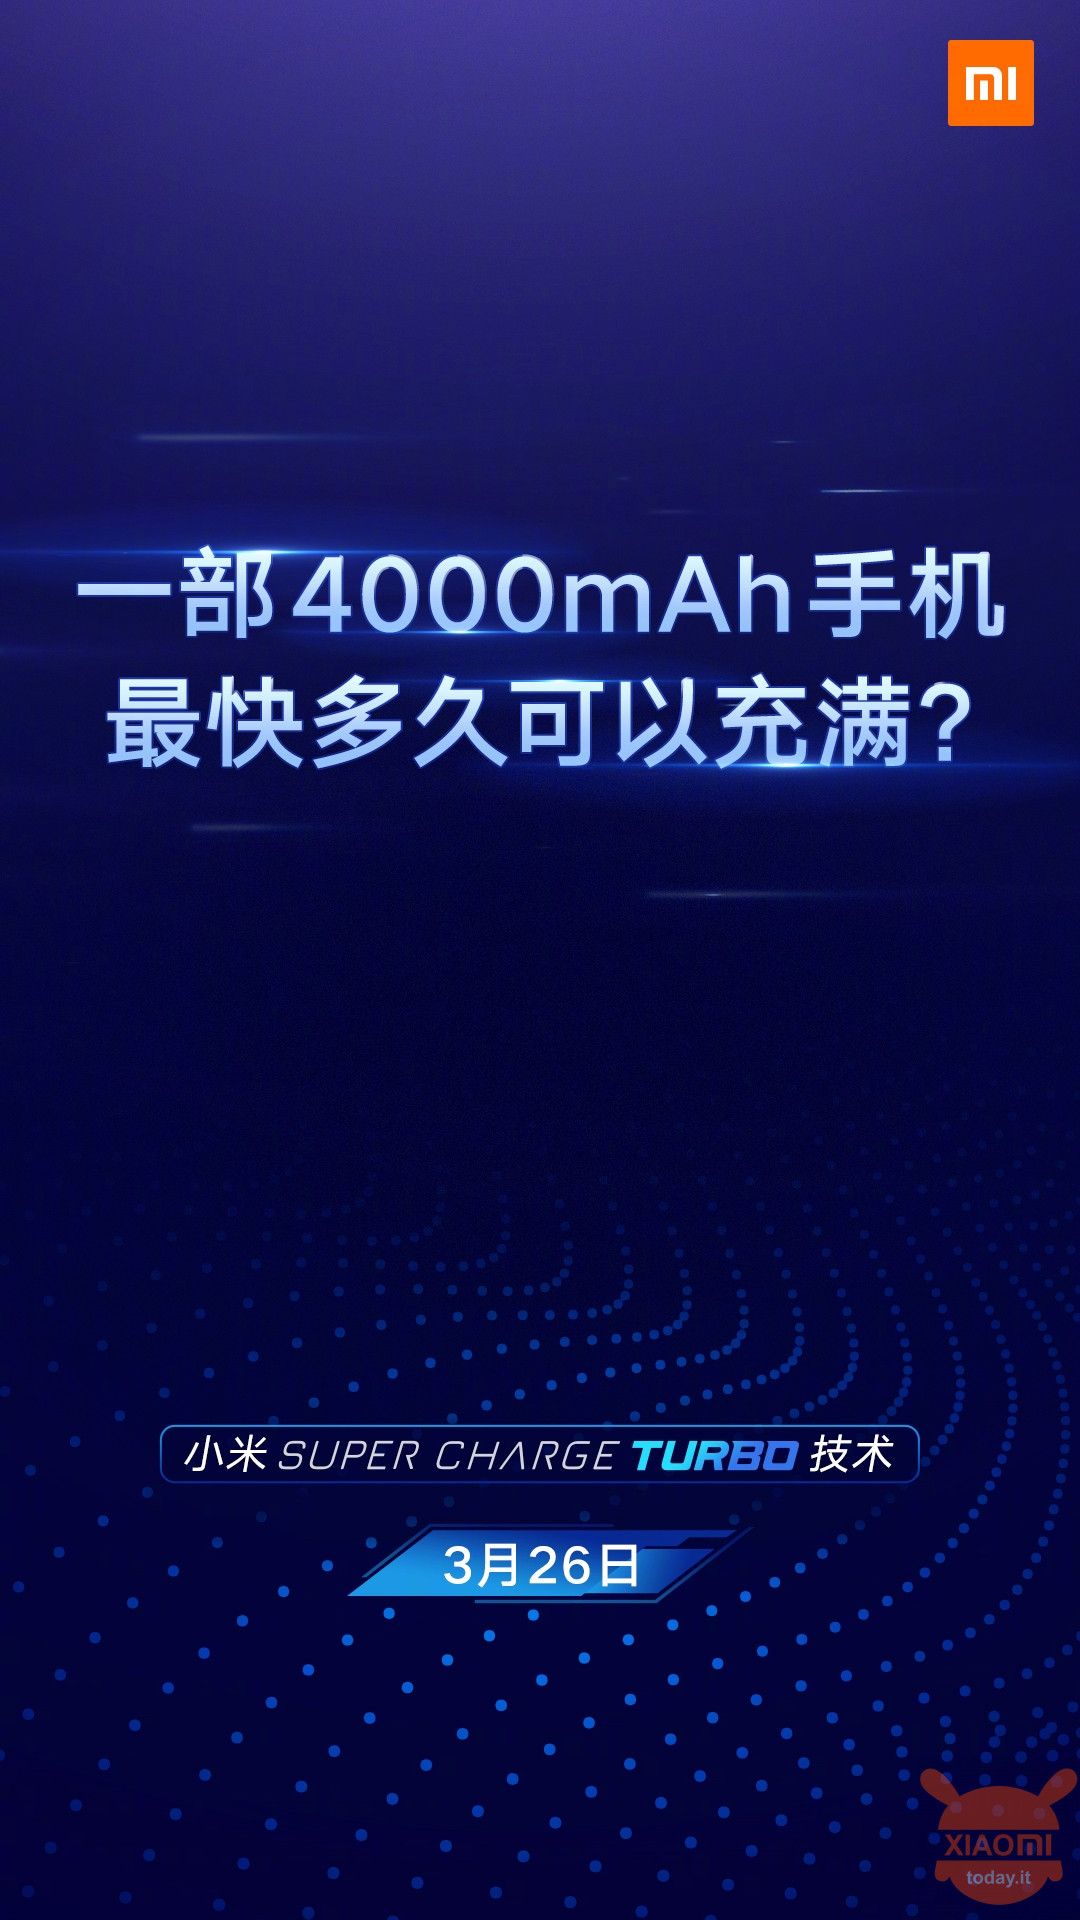 Xiaomi super charge turbo 100W